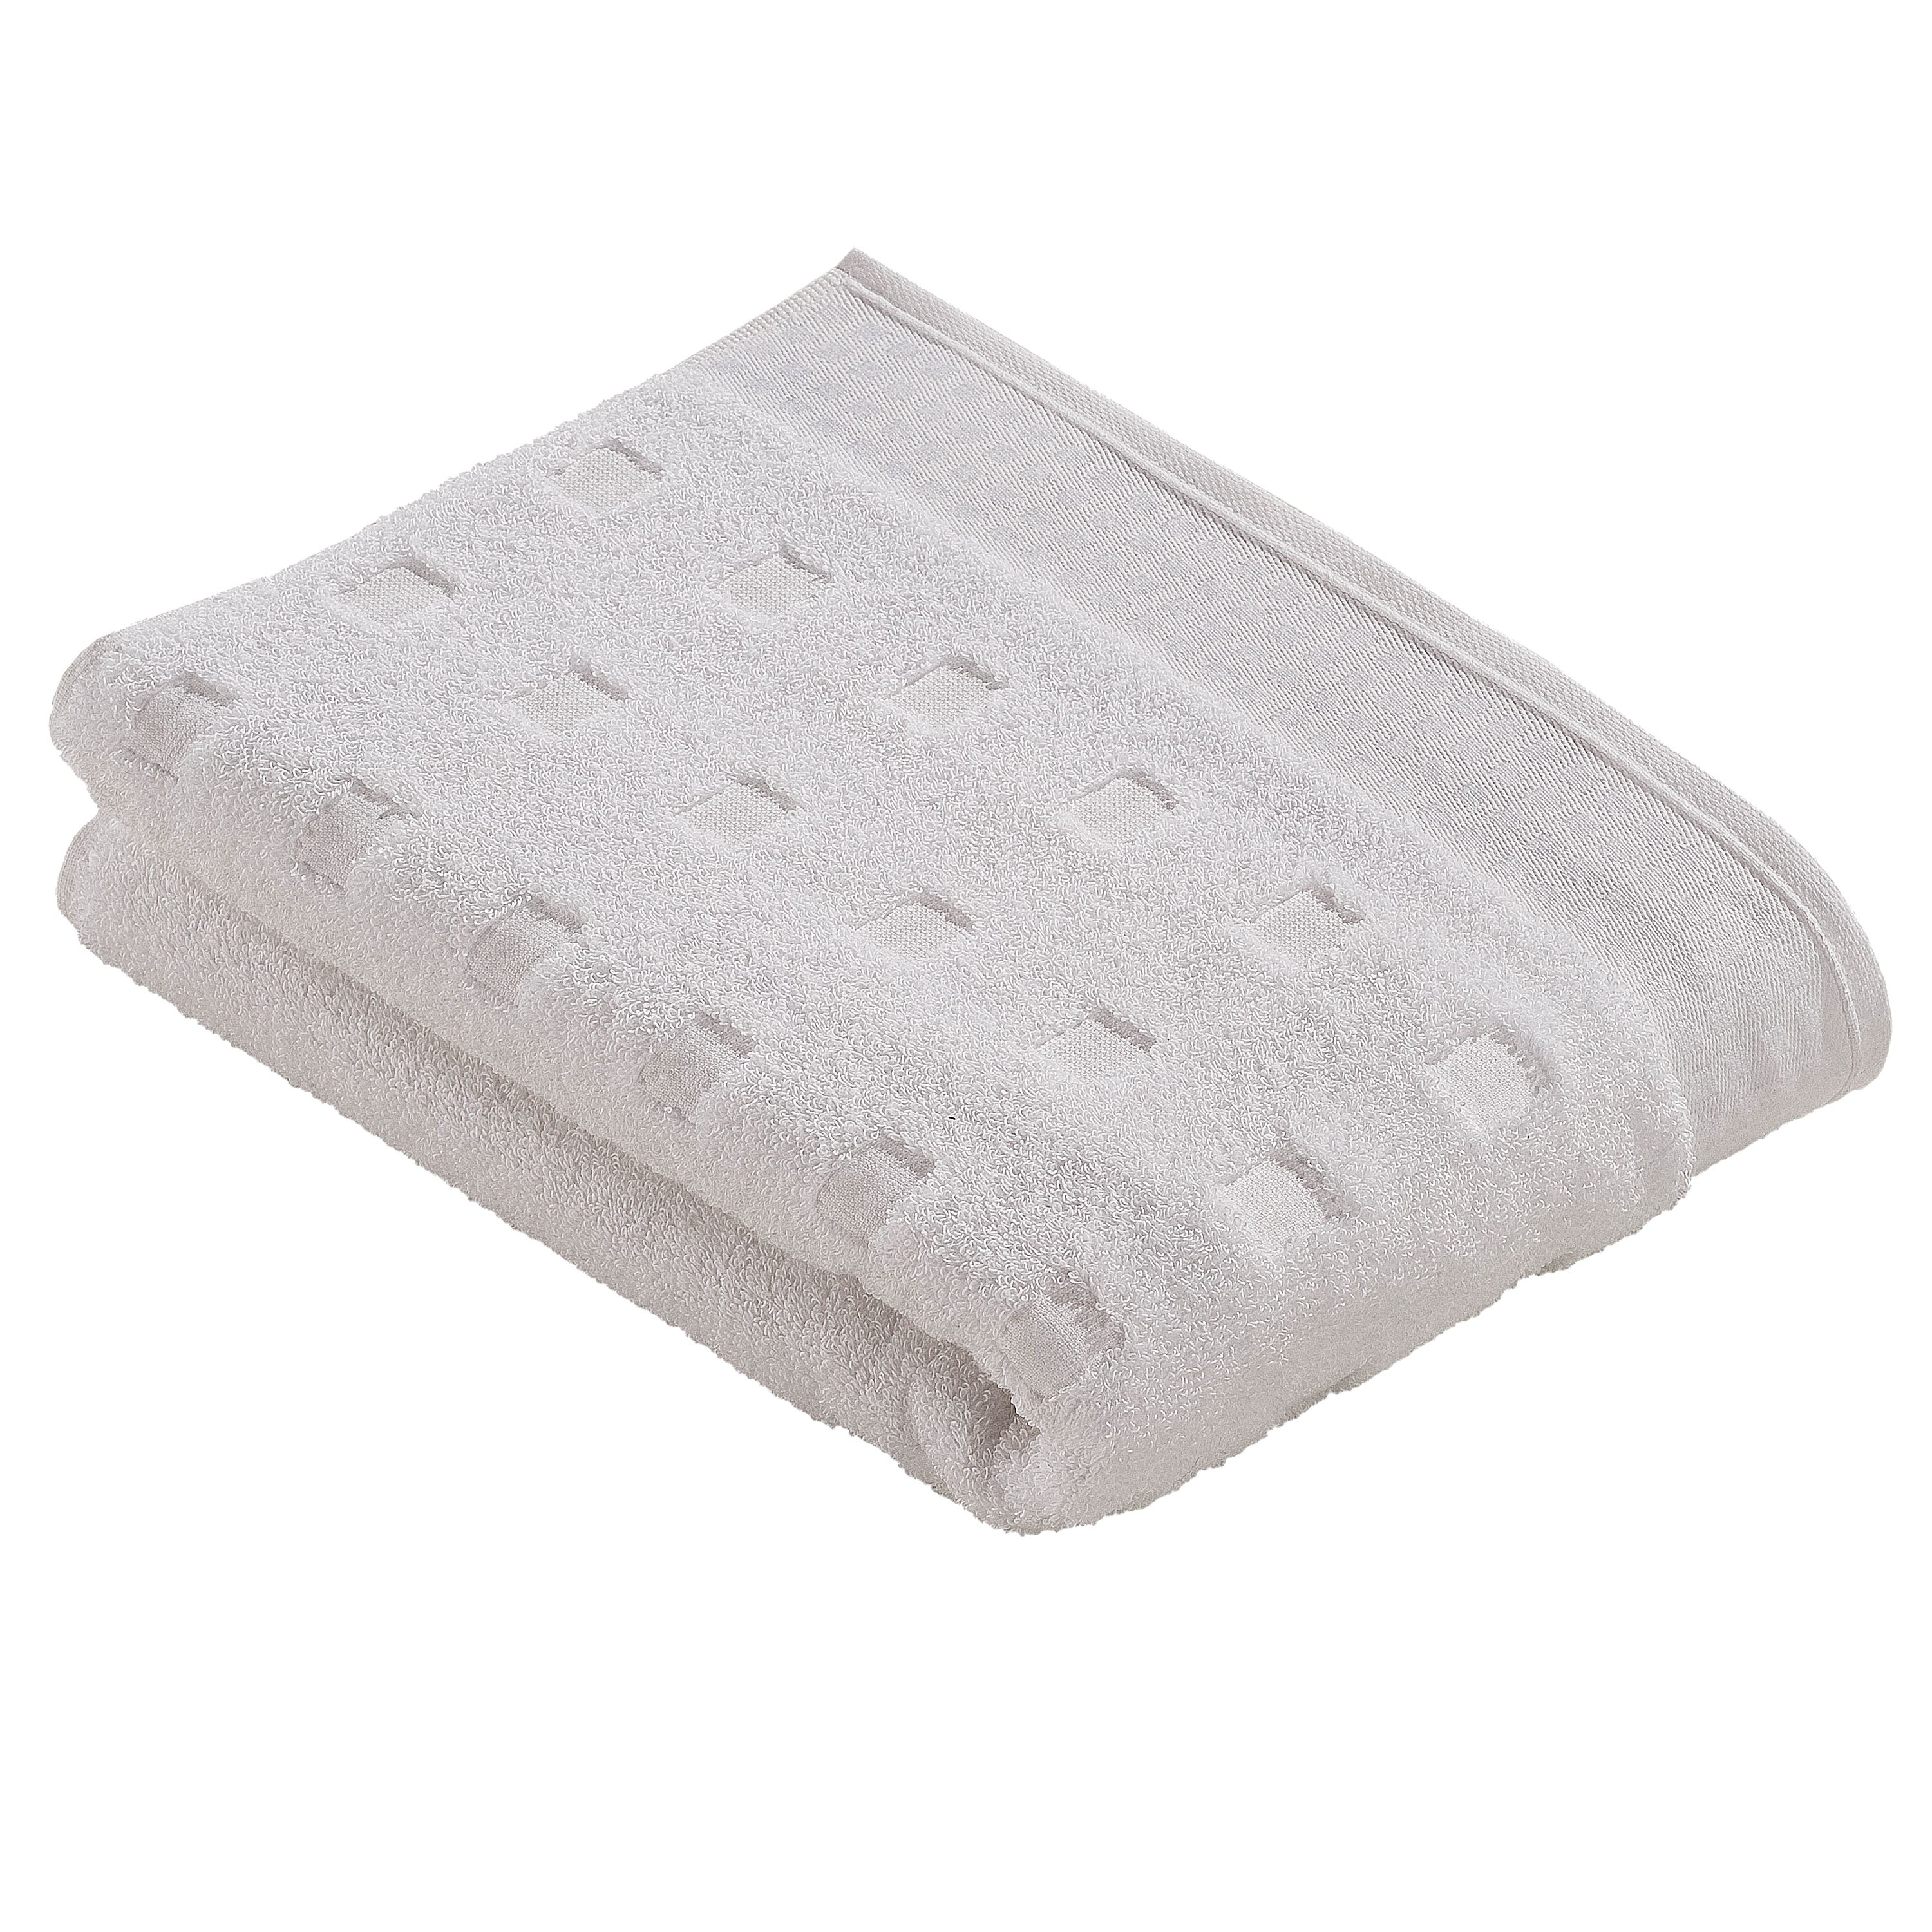 Country style  towels in white